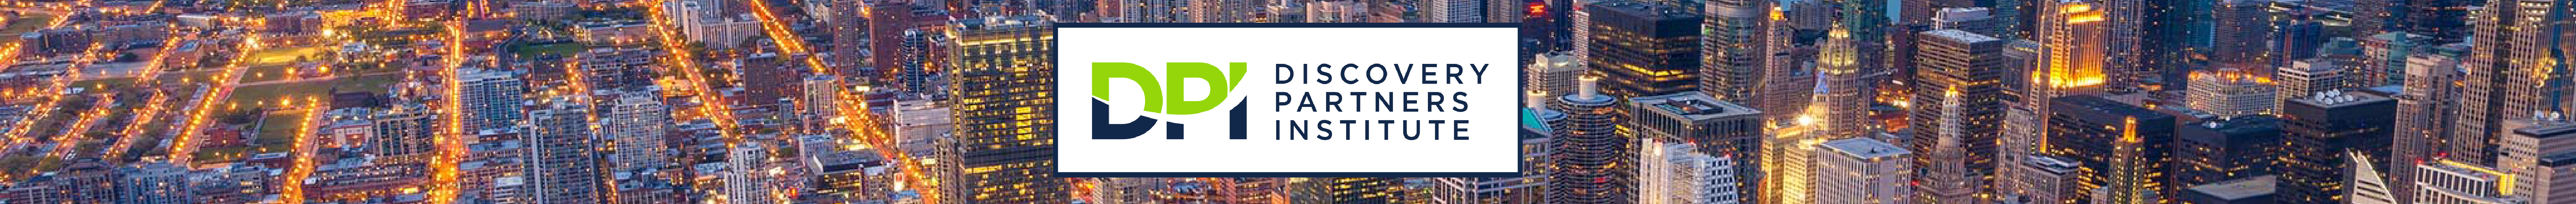 Discovery Partners Institute